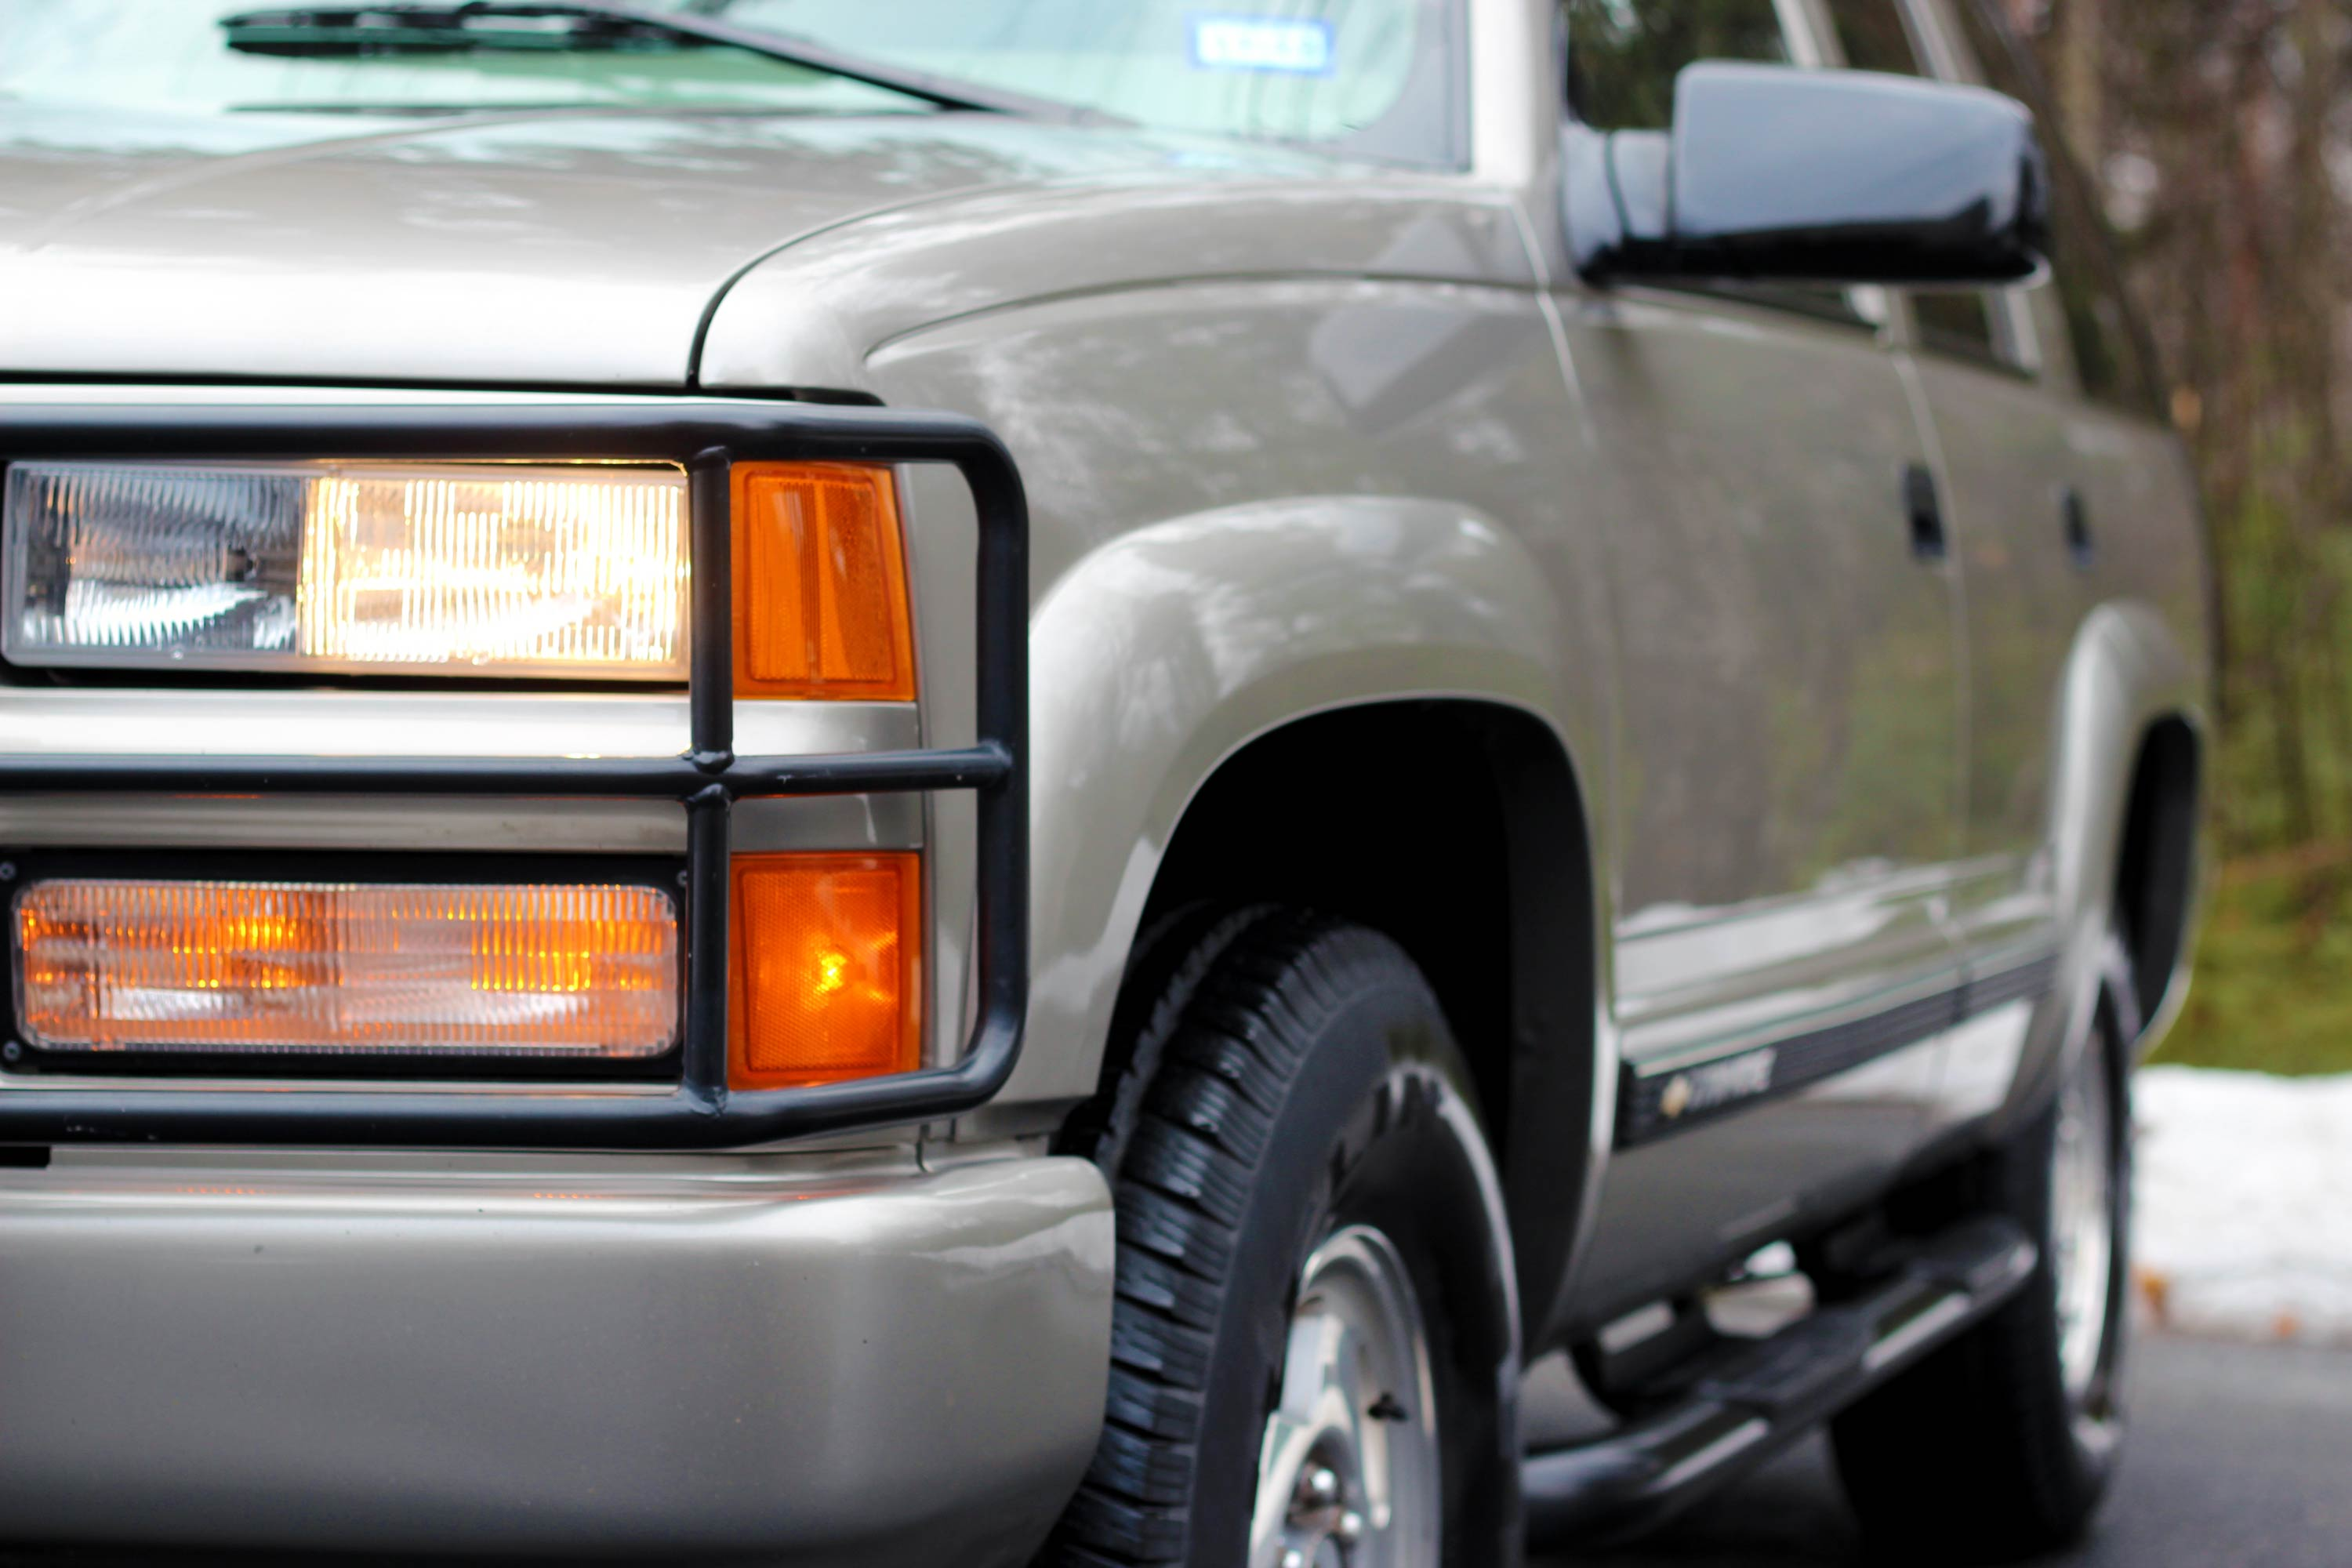 2000 Chevrolet Tahoe Z71 4x4 Special Edition - SOLD - NICANORTH